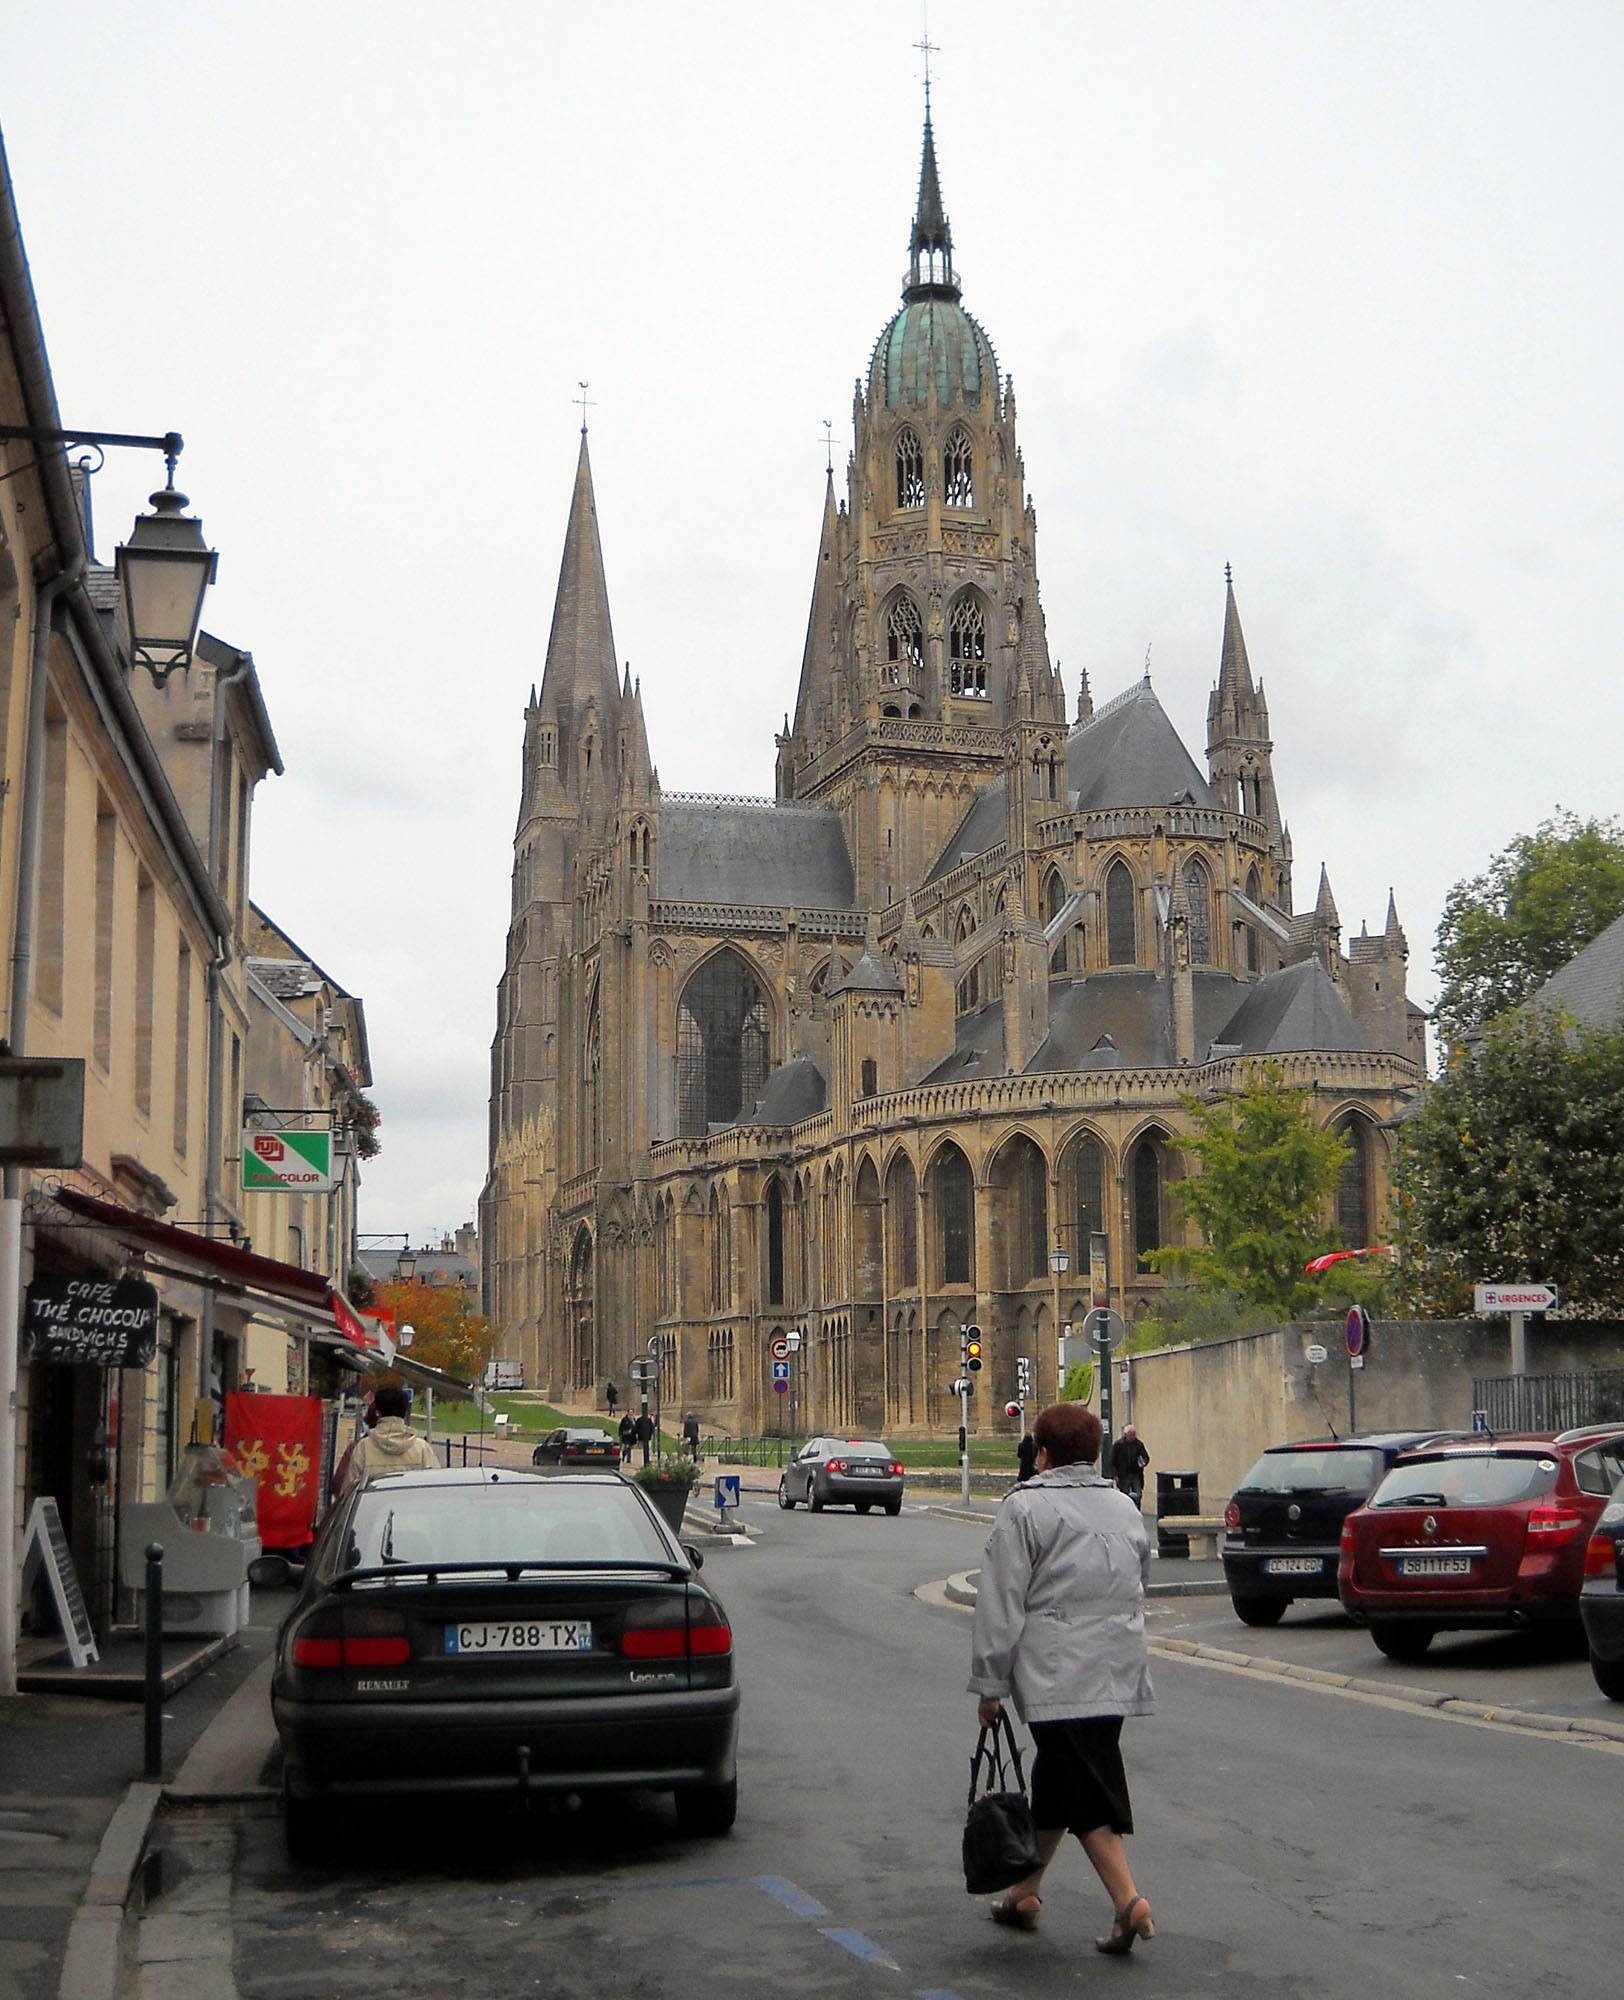 The cathedral in Bayeux, France, was consecrated in 1077 in the presence of William the Conqueror, duke of Normandy and king of England.